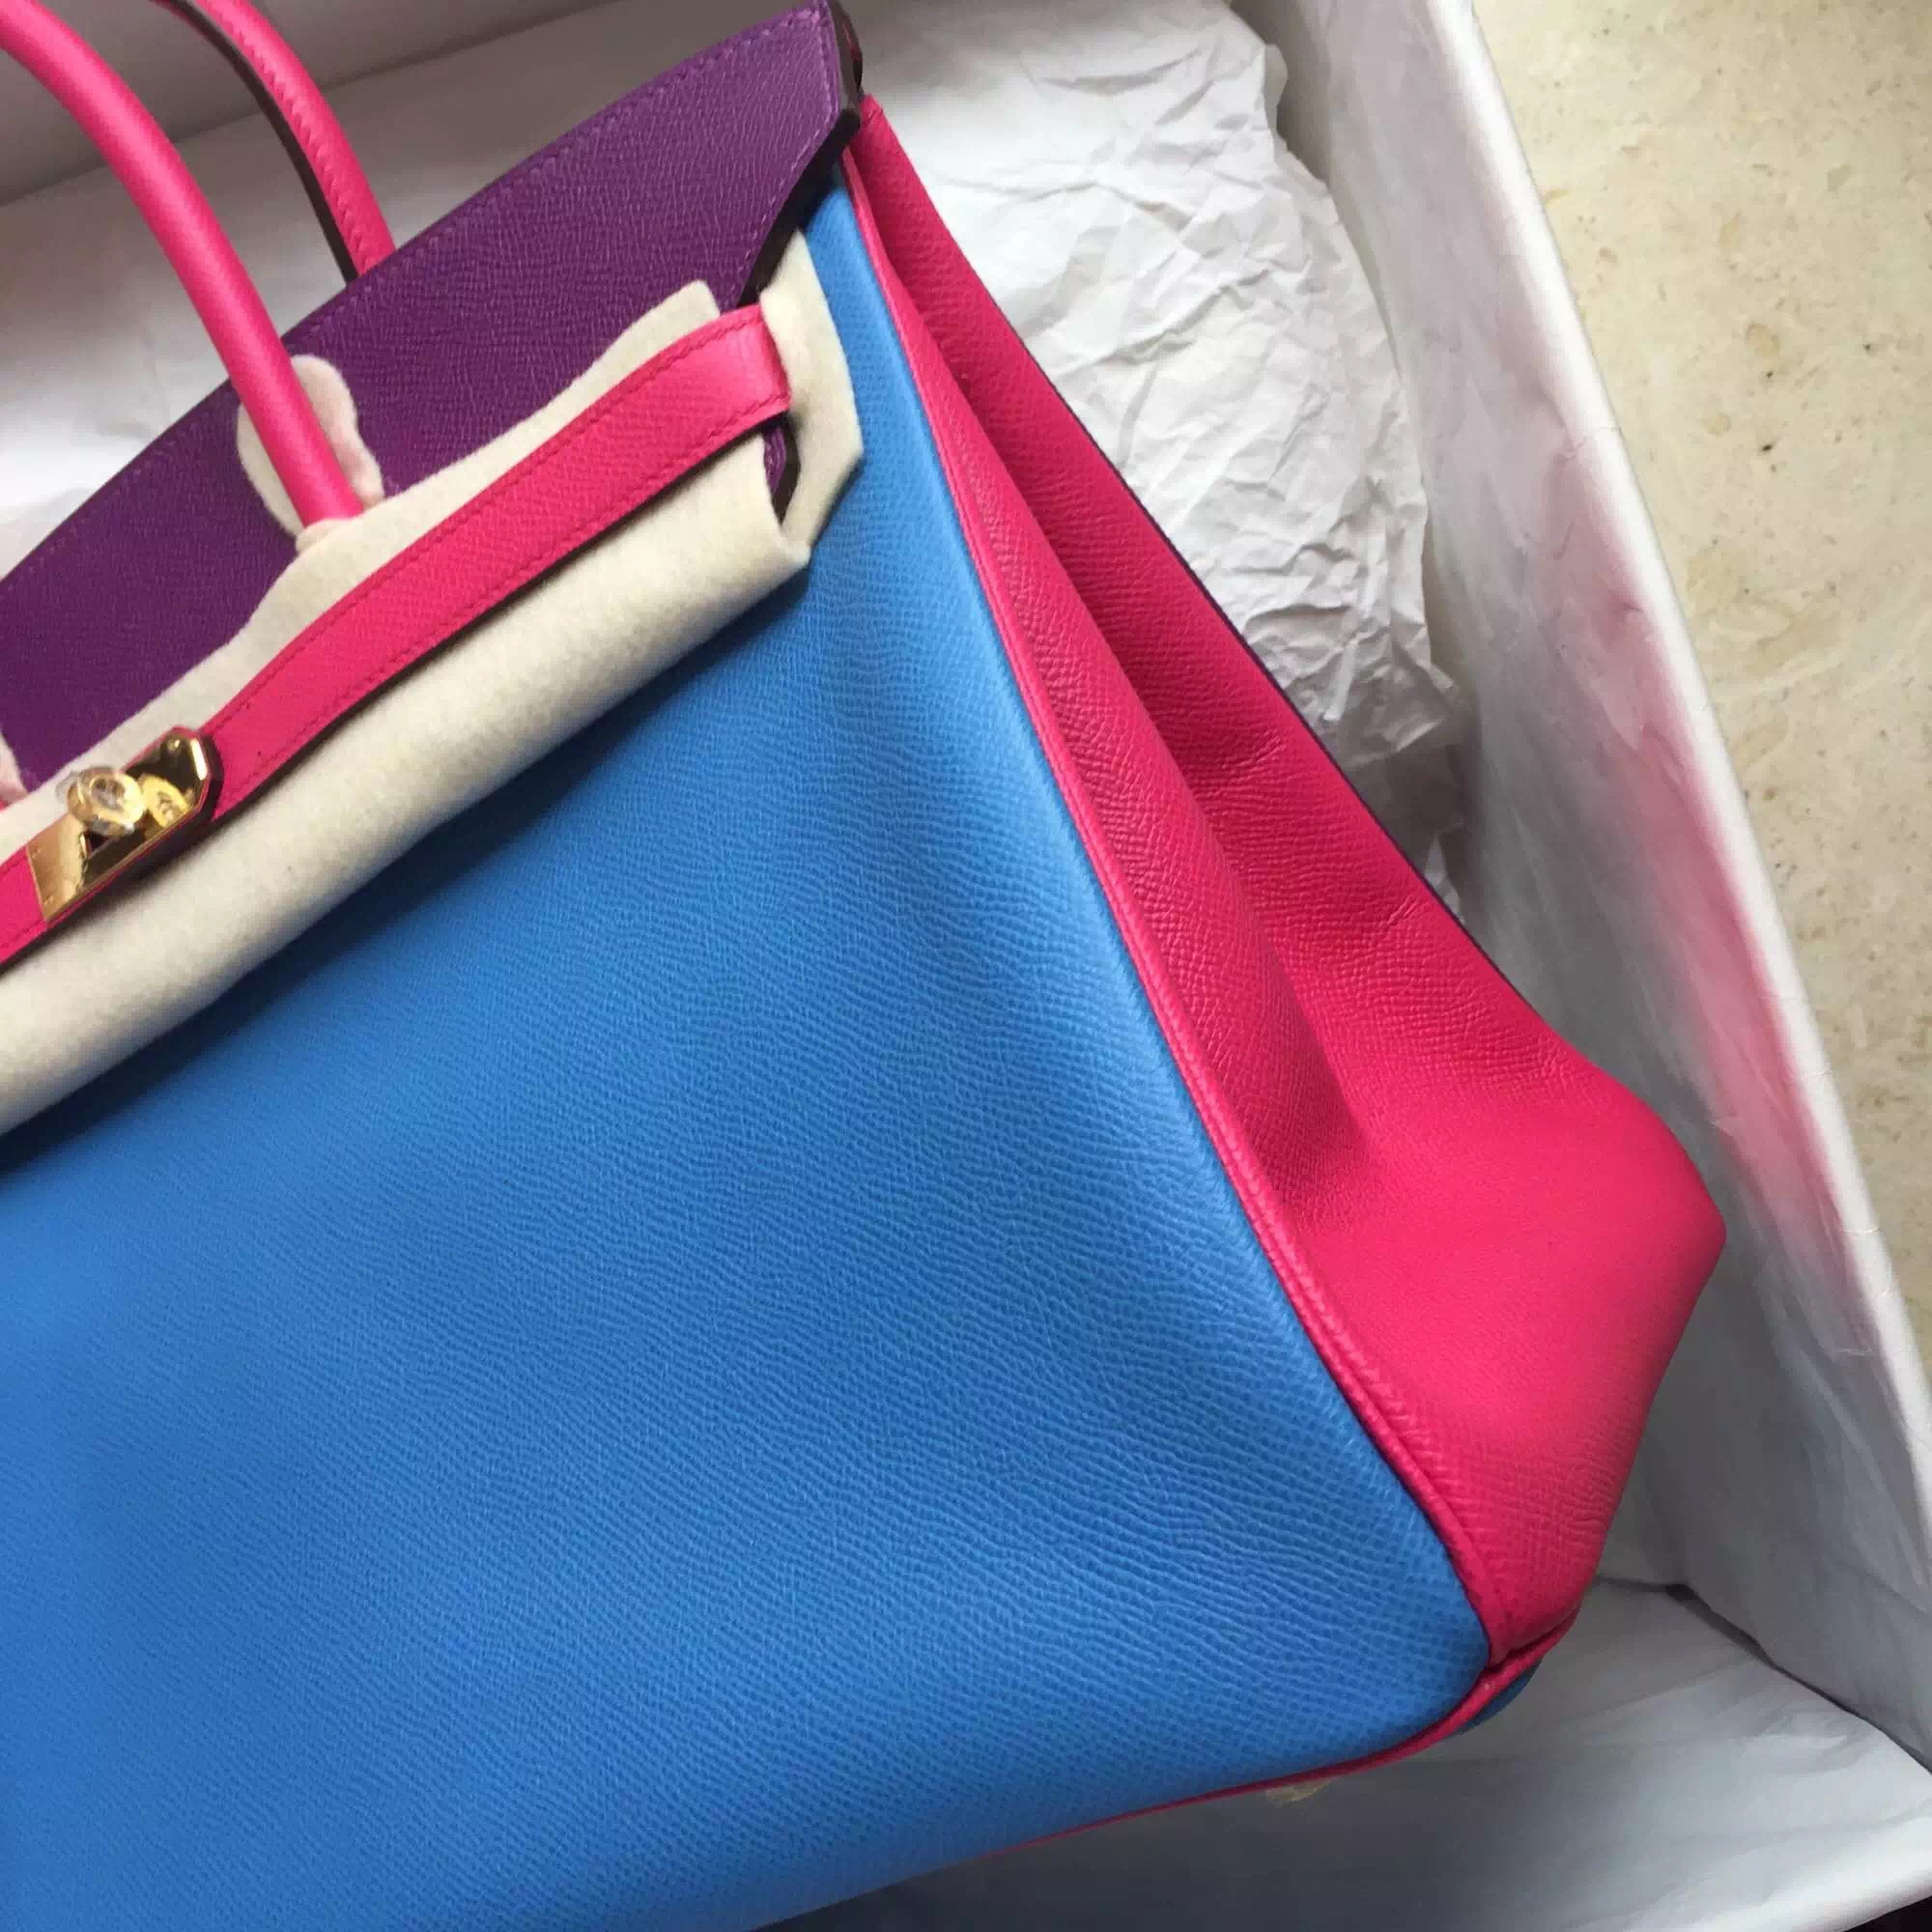 Hermes Birkin35cm 2T Blue Paradise/P9 Anemone/E5 Candy Pink Epsom Leather Tote Bag